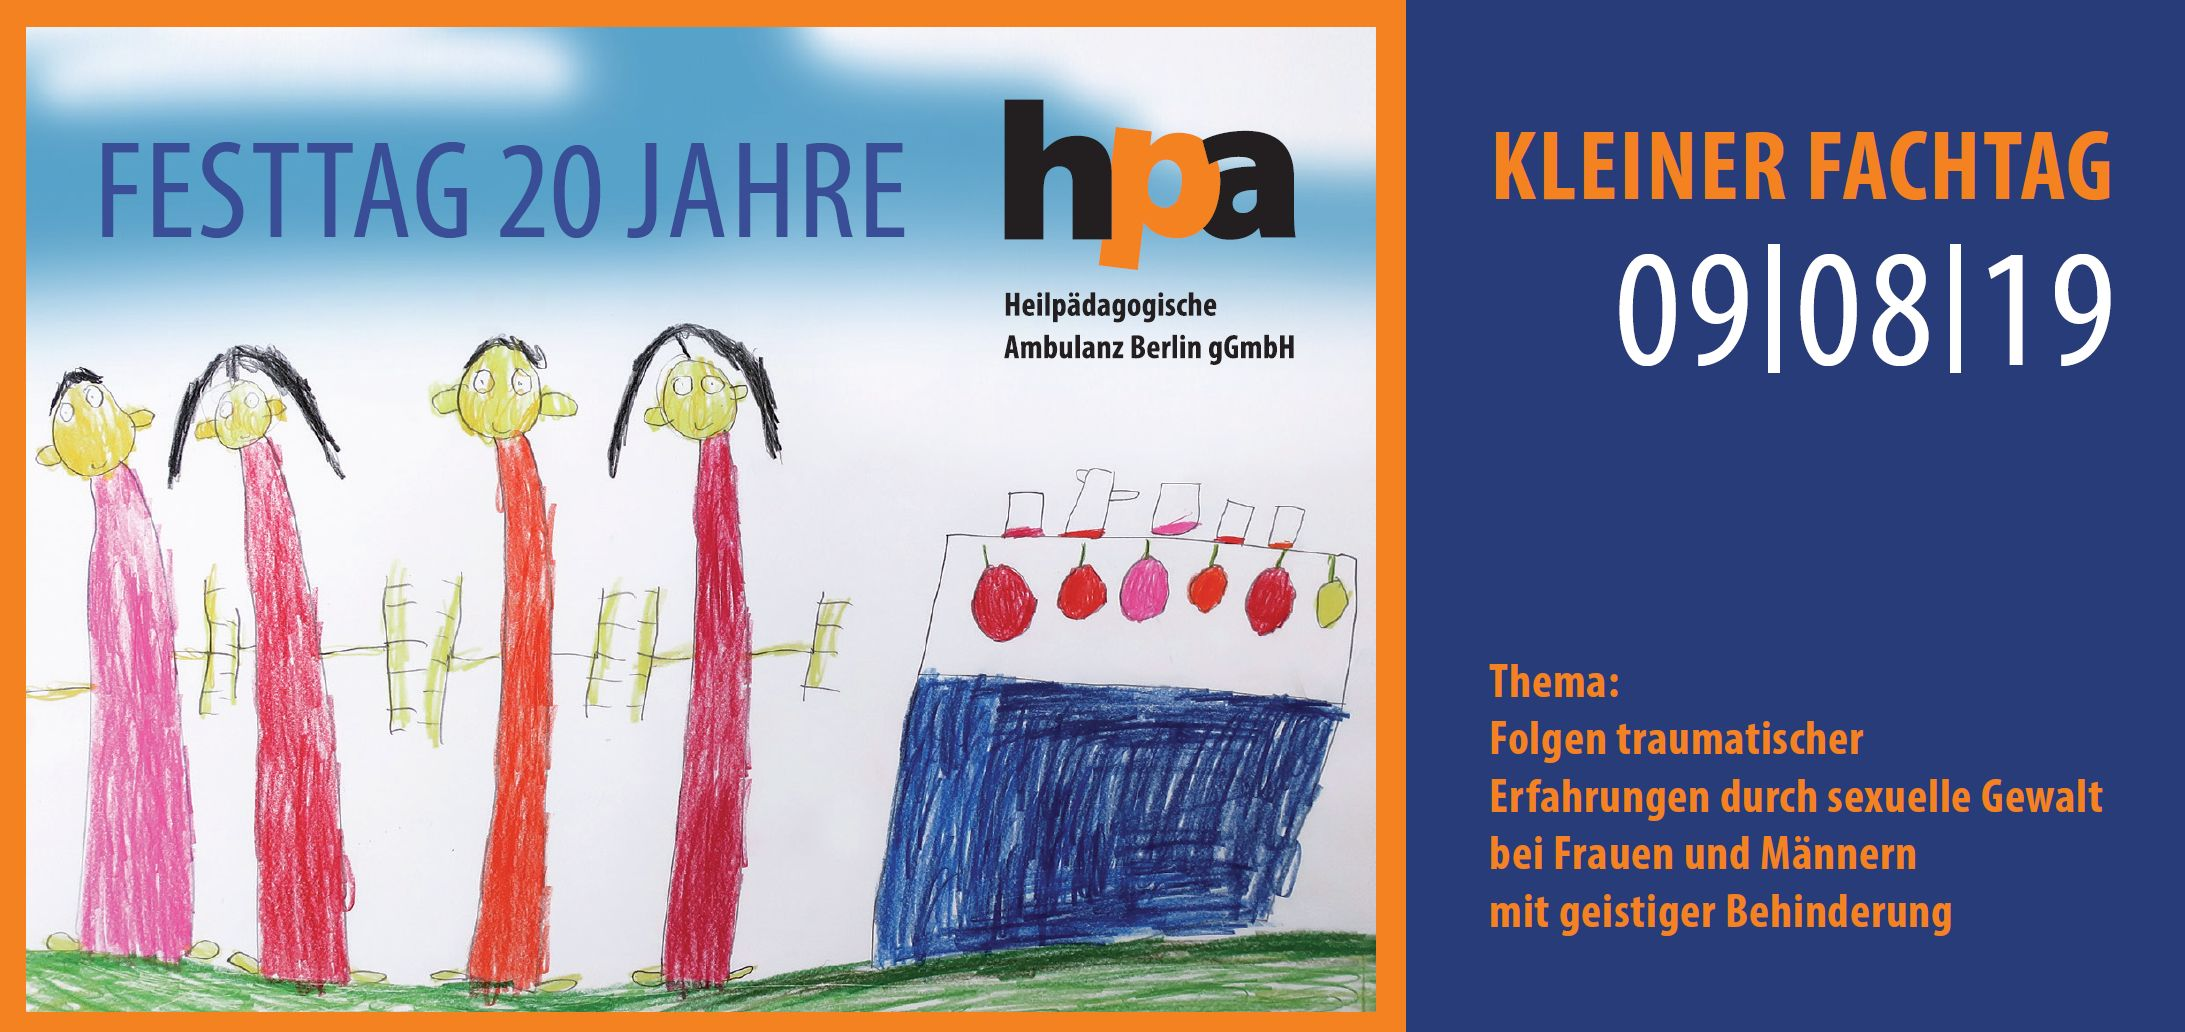 Fachtag 20 Jahre HpA